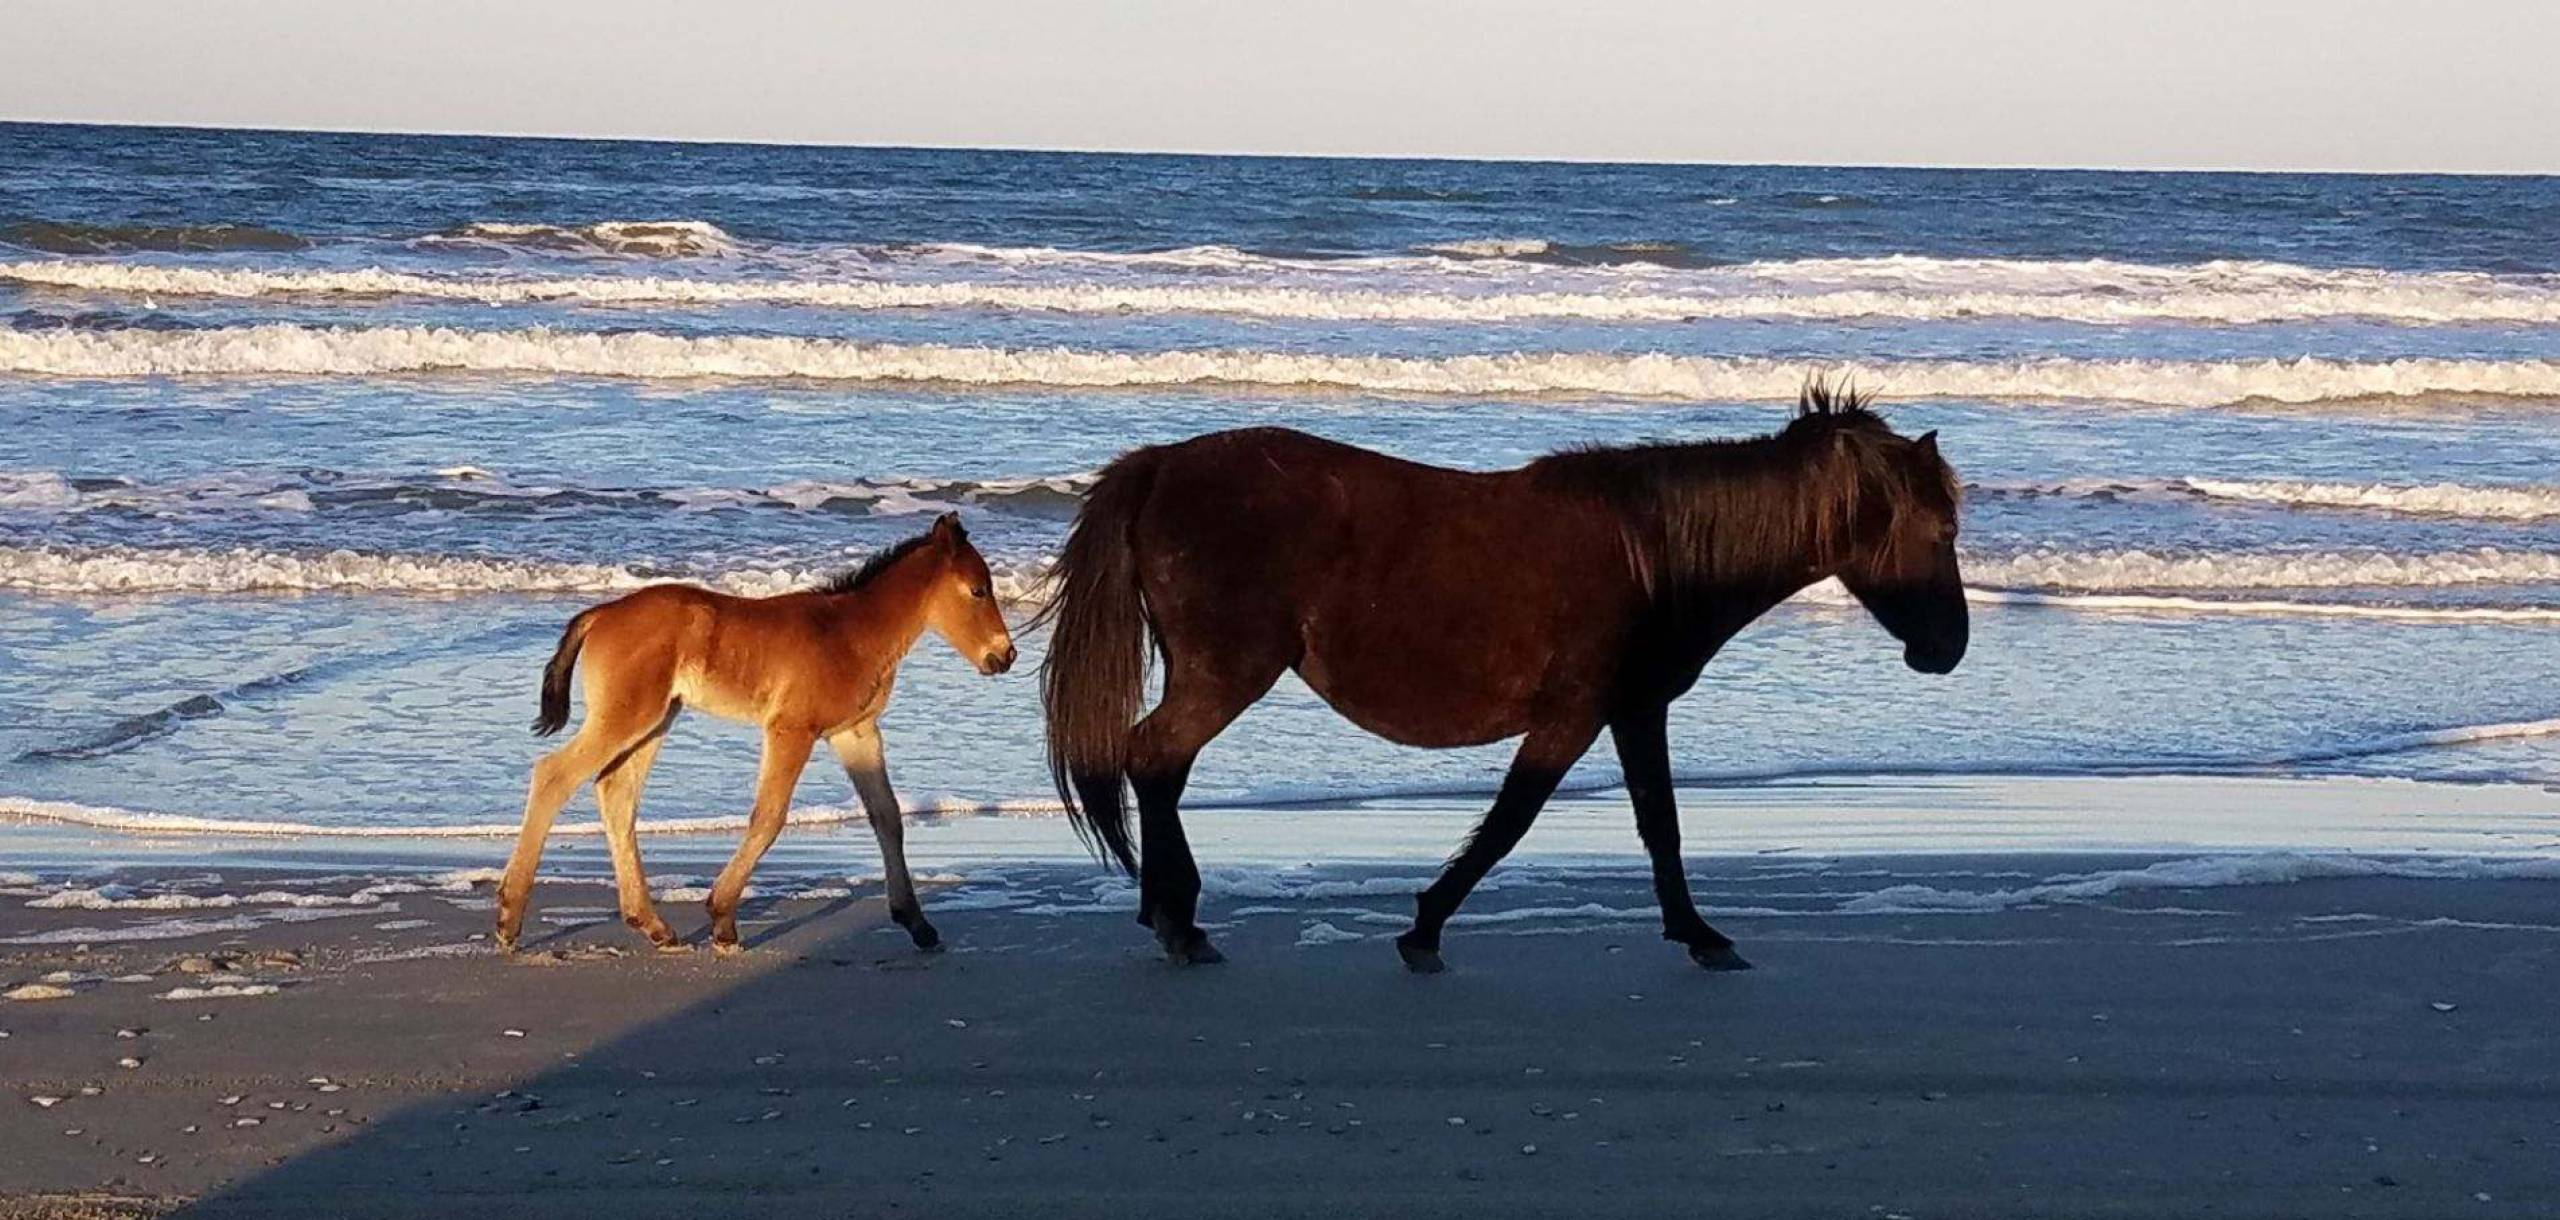 First Foal of 2019 Carova Herd - photo Mike Davenport